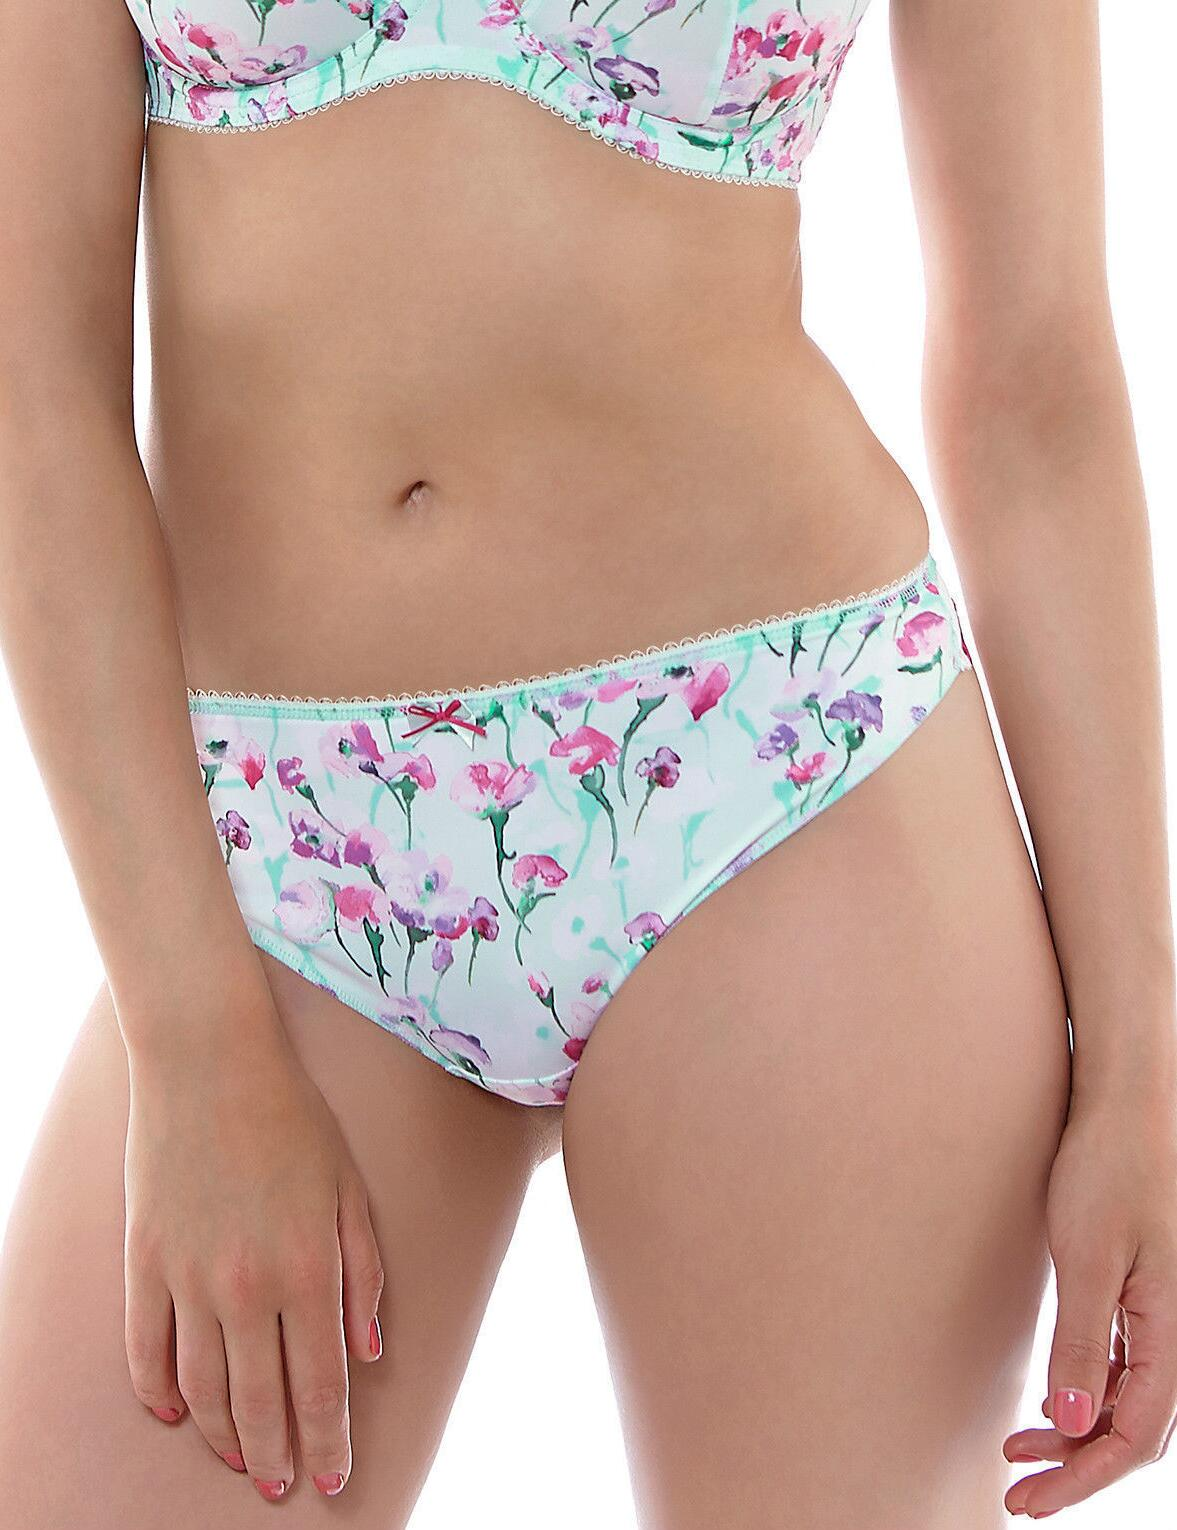 Fantasie Alicia Thong Knickers - Mint Green